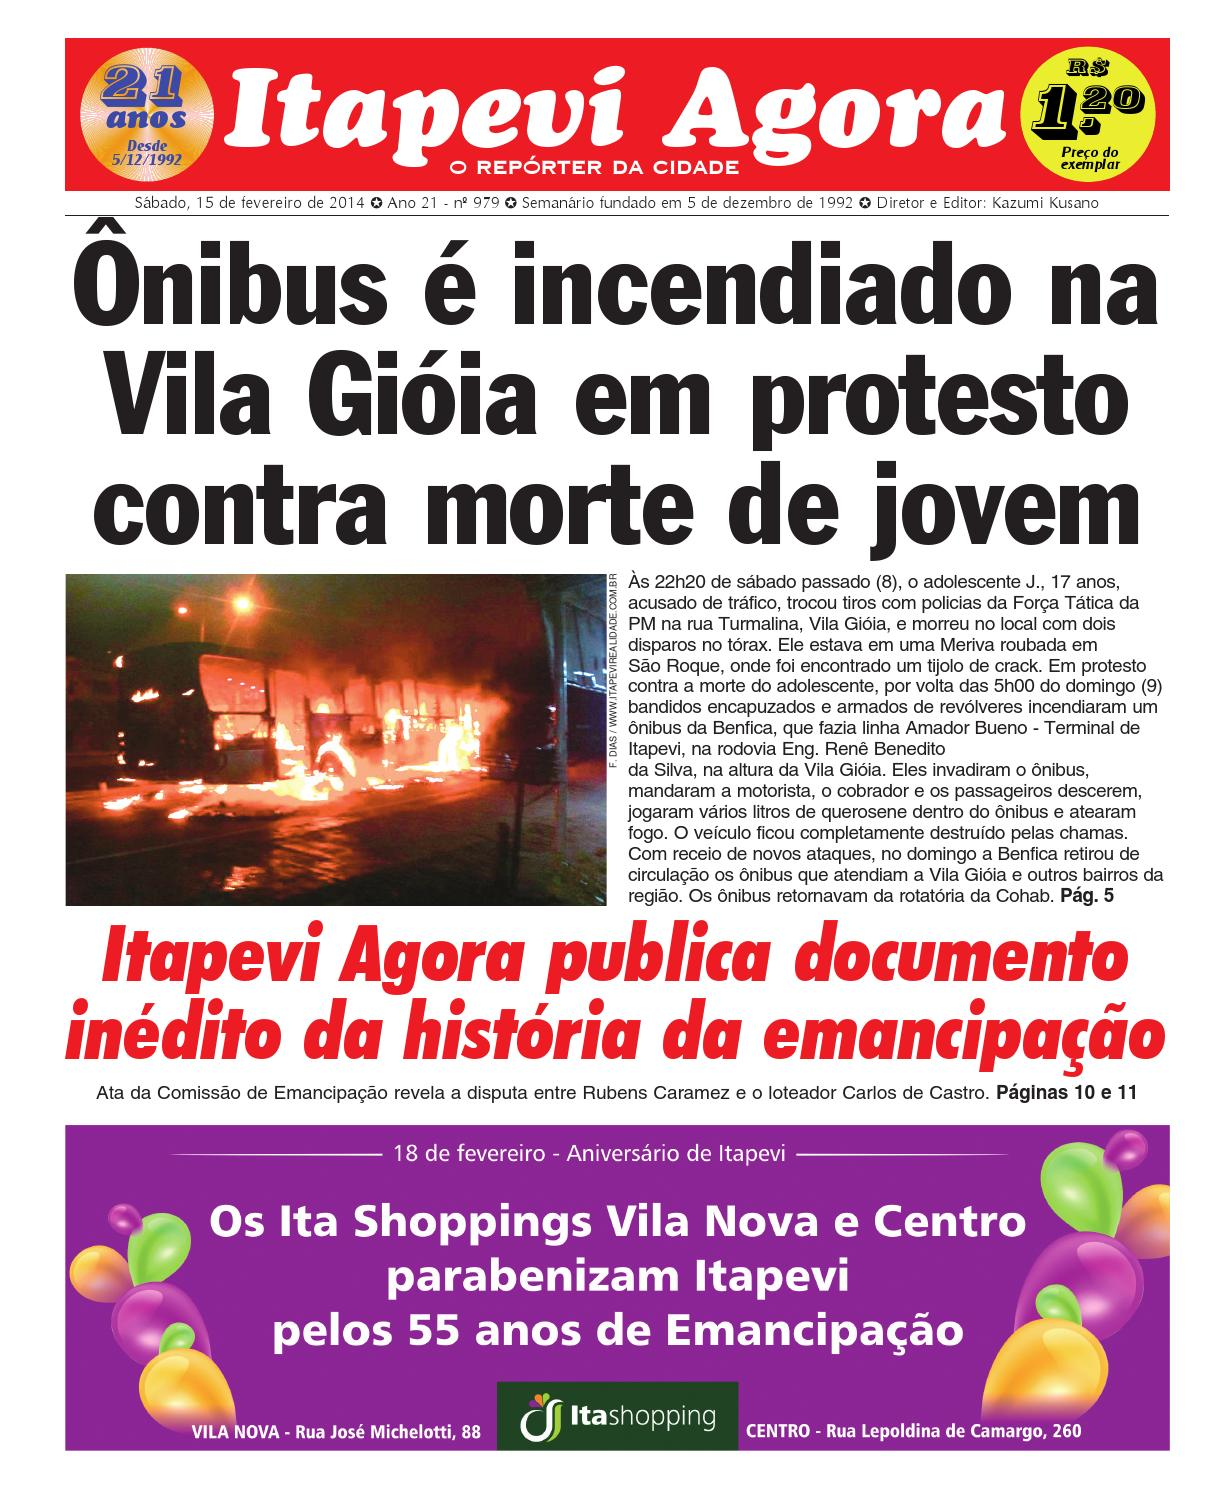 73fa84cffc1 ITAPEVI AGORA Nº 979 - 15 02 2014 by JORNAL ITAPEVI AGORA - issuu